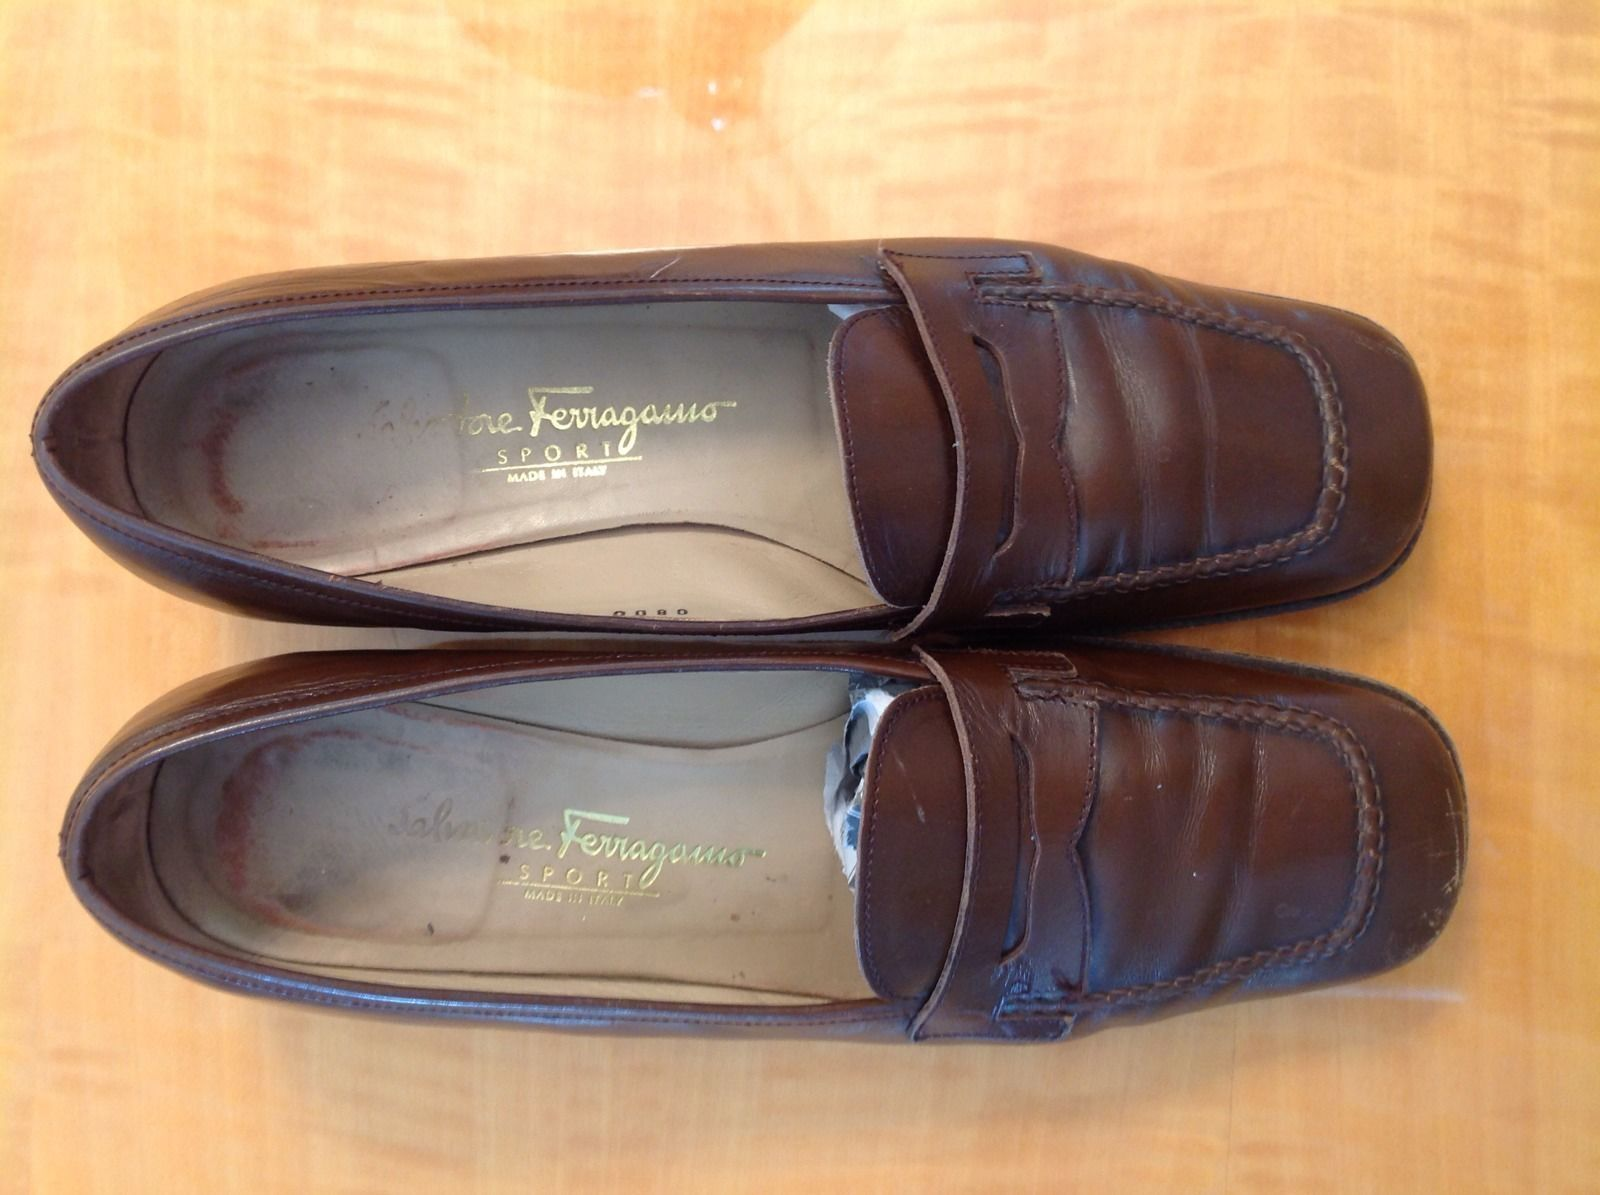 VGC Salvatore SZ Ferragamo Sport Penny Loafers SZ Salvatore 7.5 B Made in  07b482